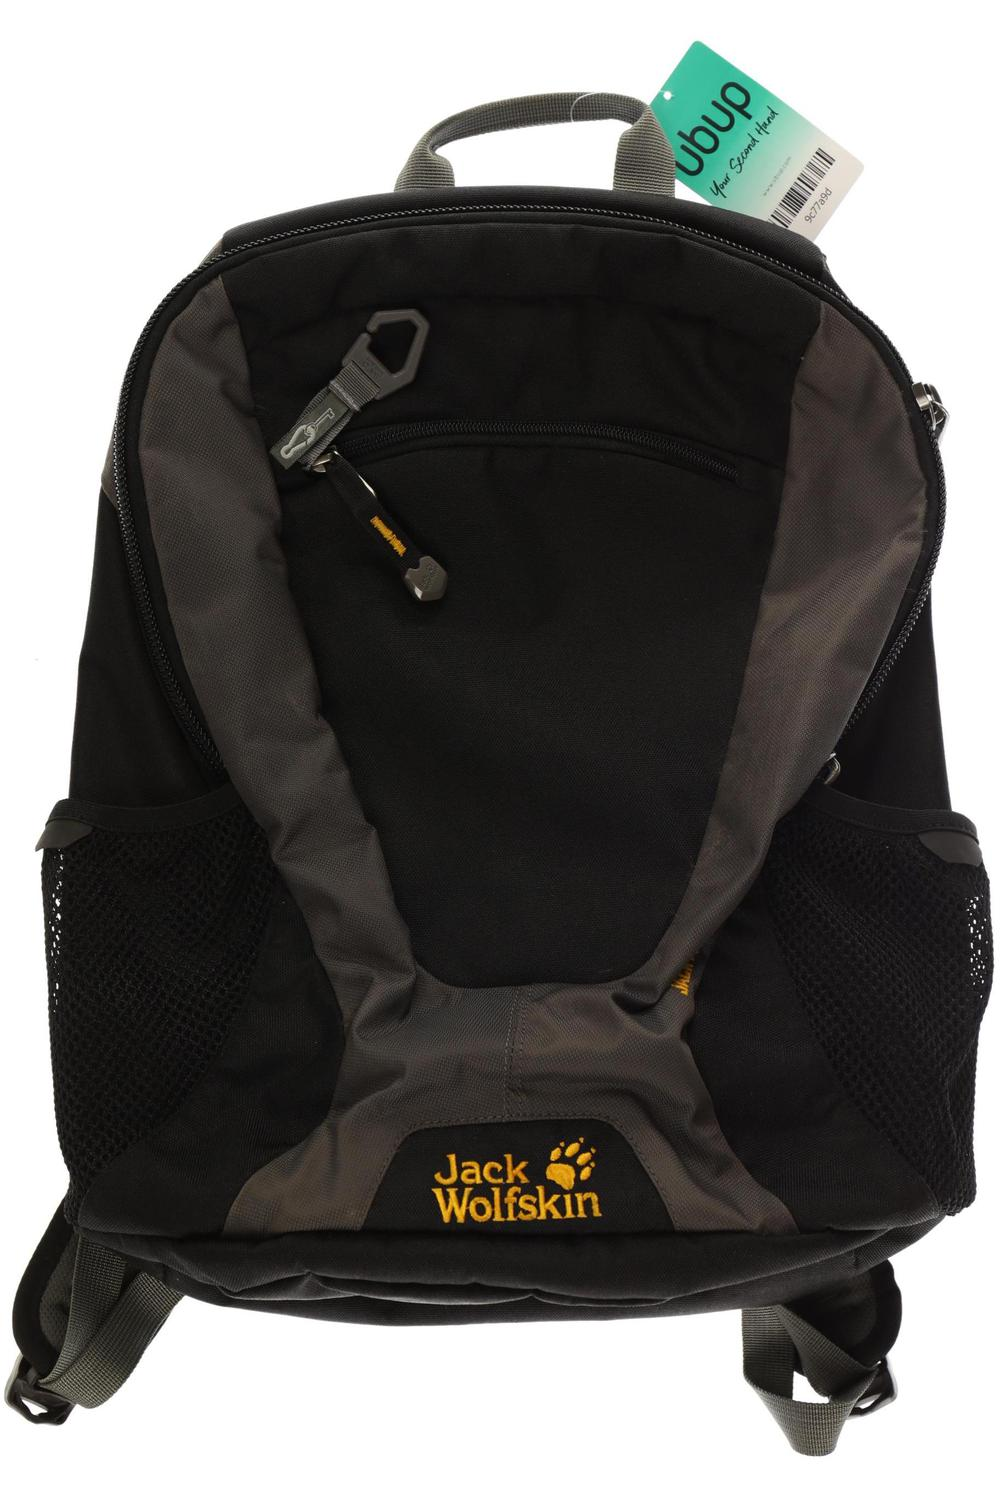 later check out authorized site Jack Wolfskin Rucksack Herren Backpack Tasche Baumwolle ...